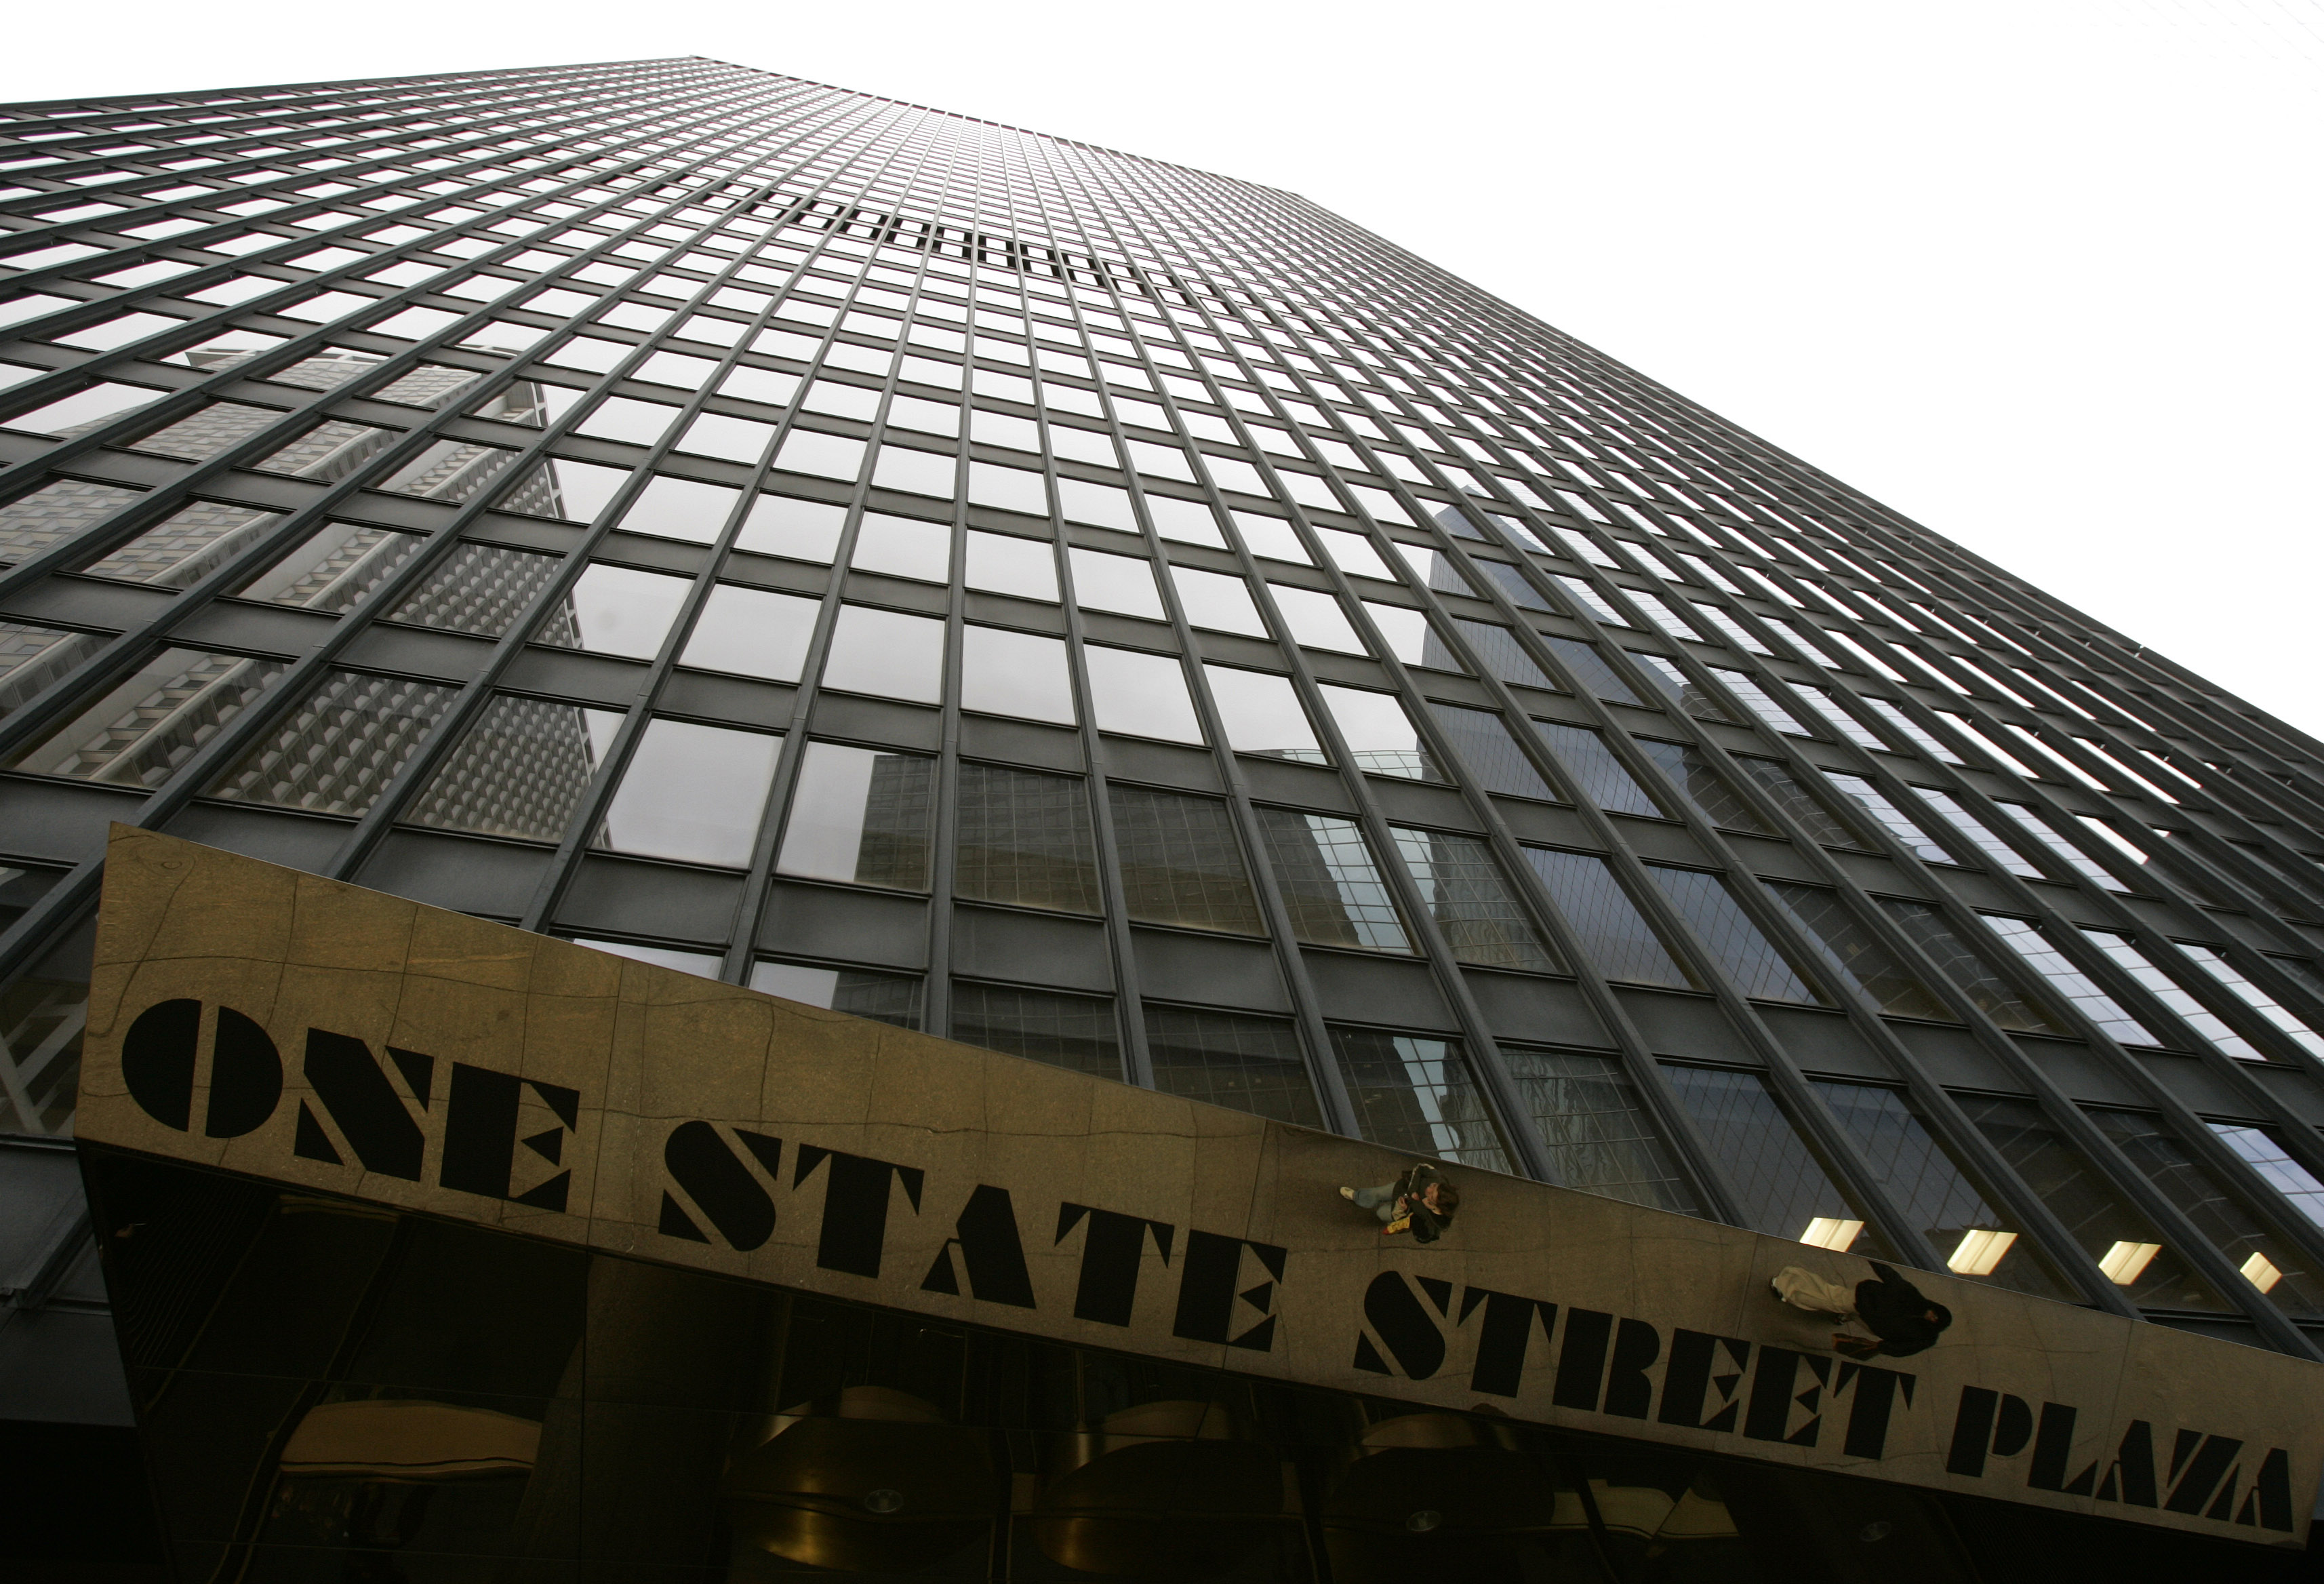 The Ambac building at One State Street Plaza is seen in New York March 5, 2008. REUTERS/Joshua Lott